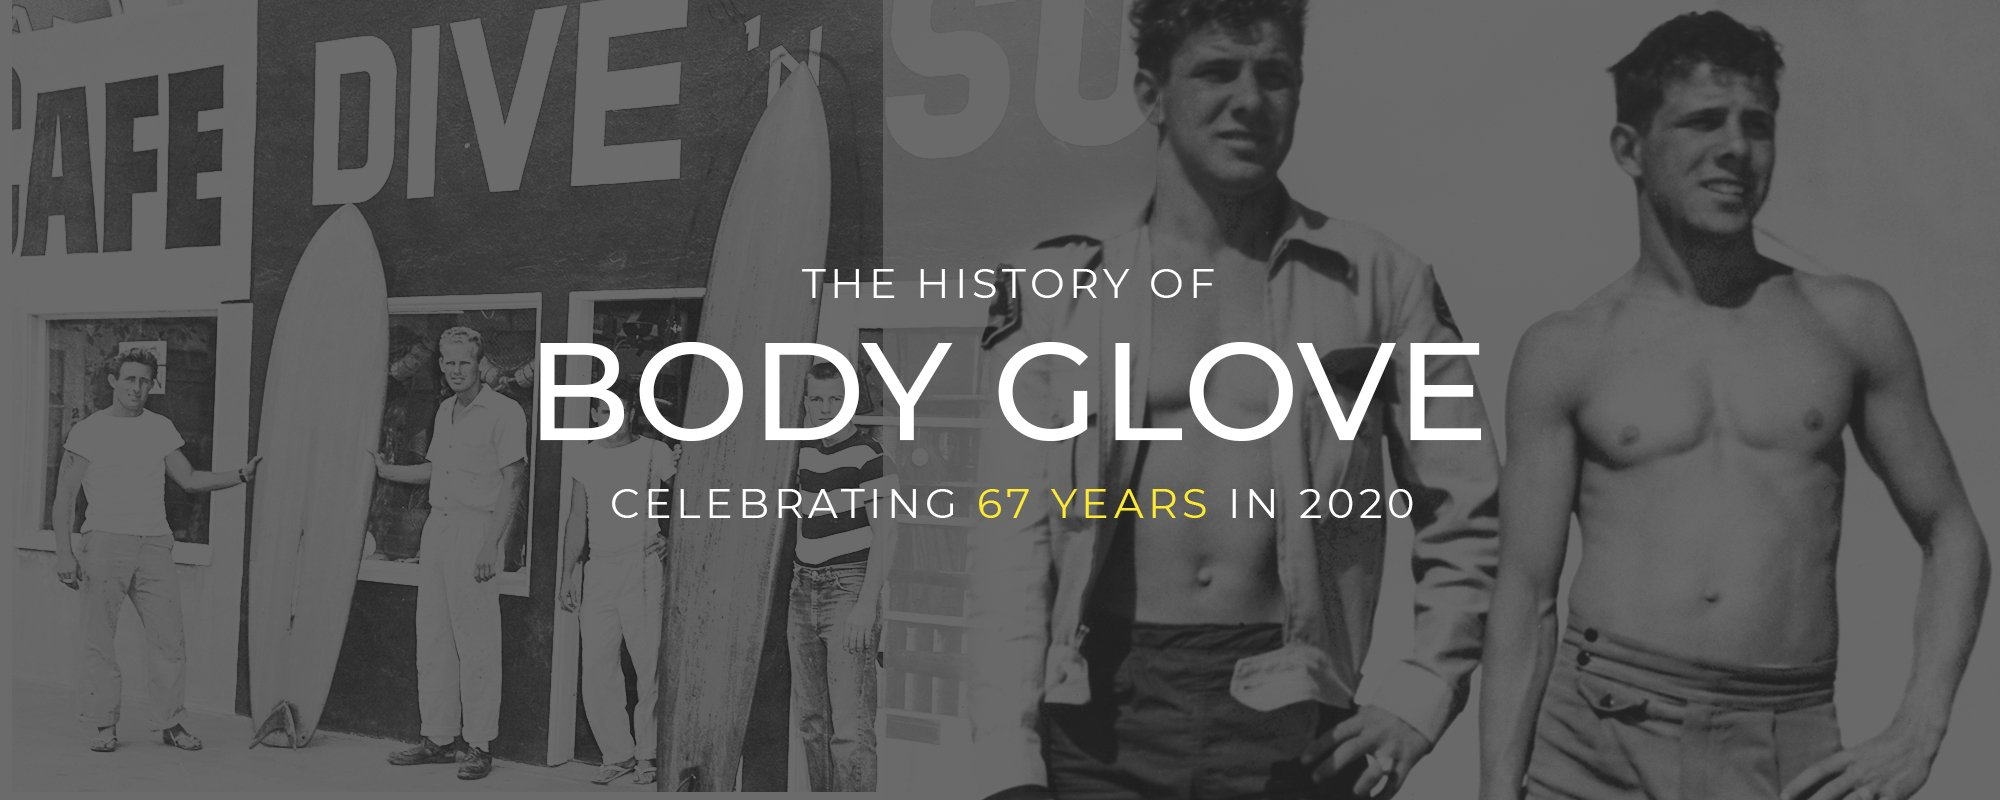 The History of Body Glove | Celebrating 67 Years in 2020